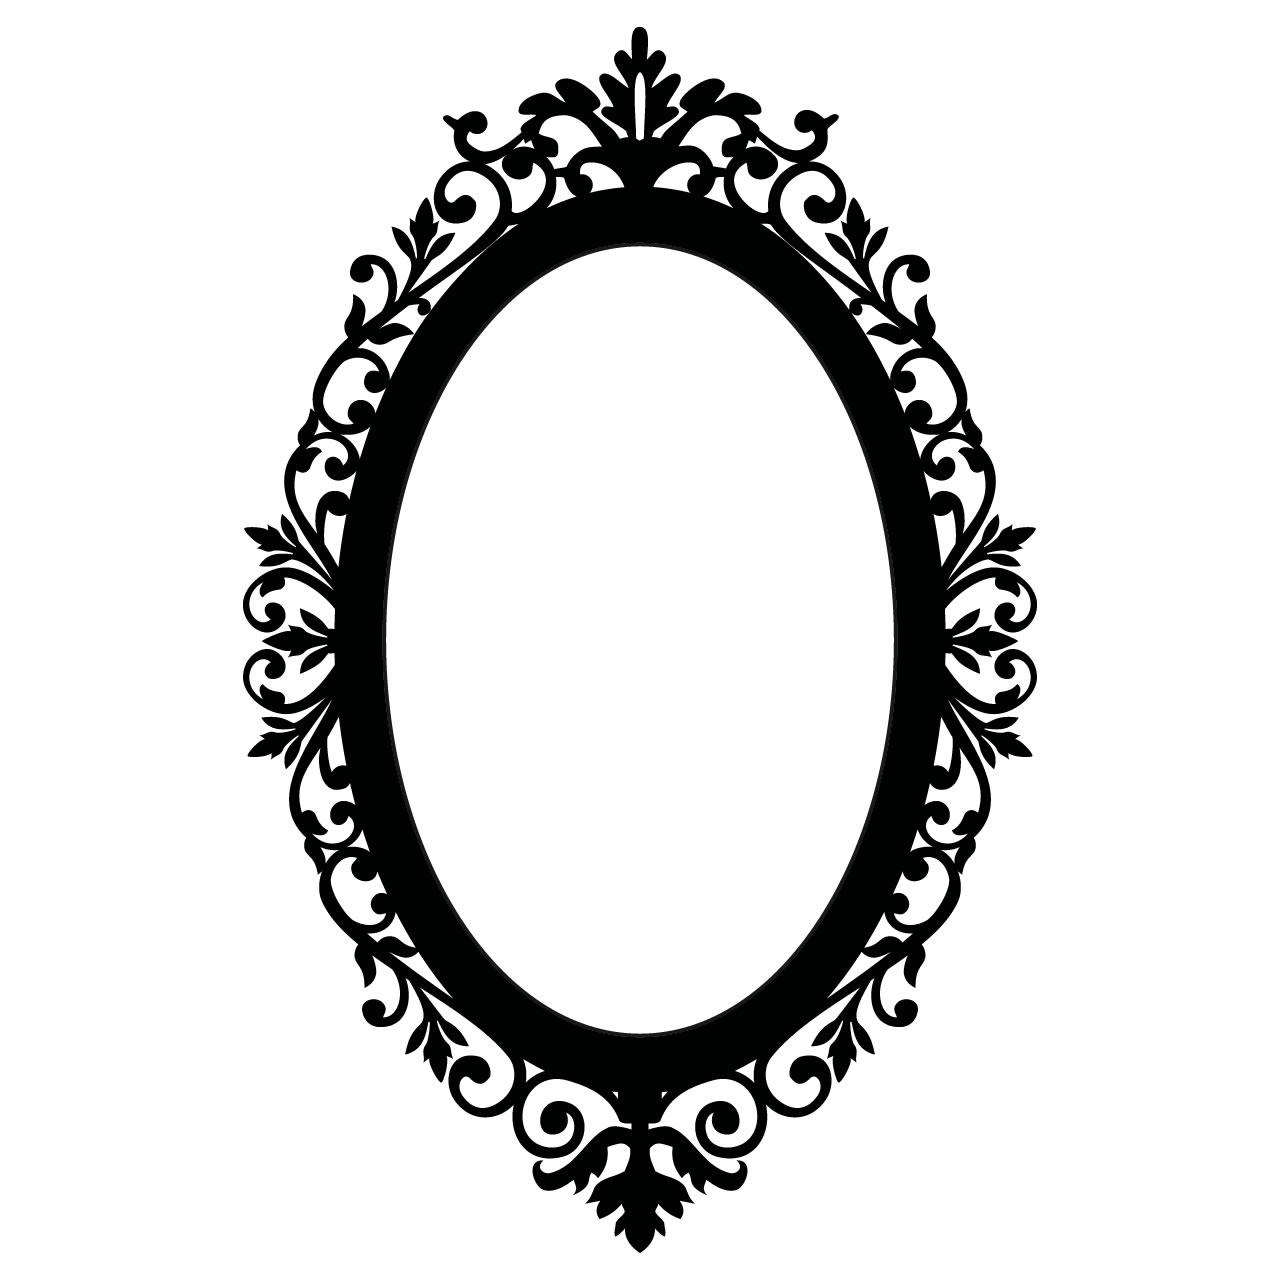 Antique Oval Frame Silhouette   Clipart Panda   Free Clipart Images